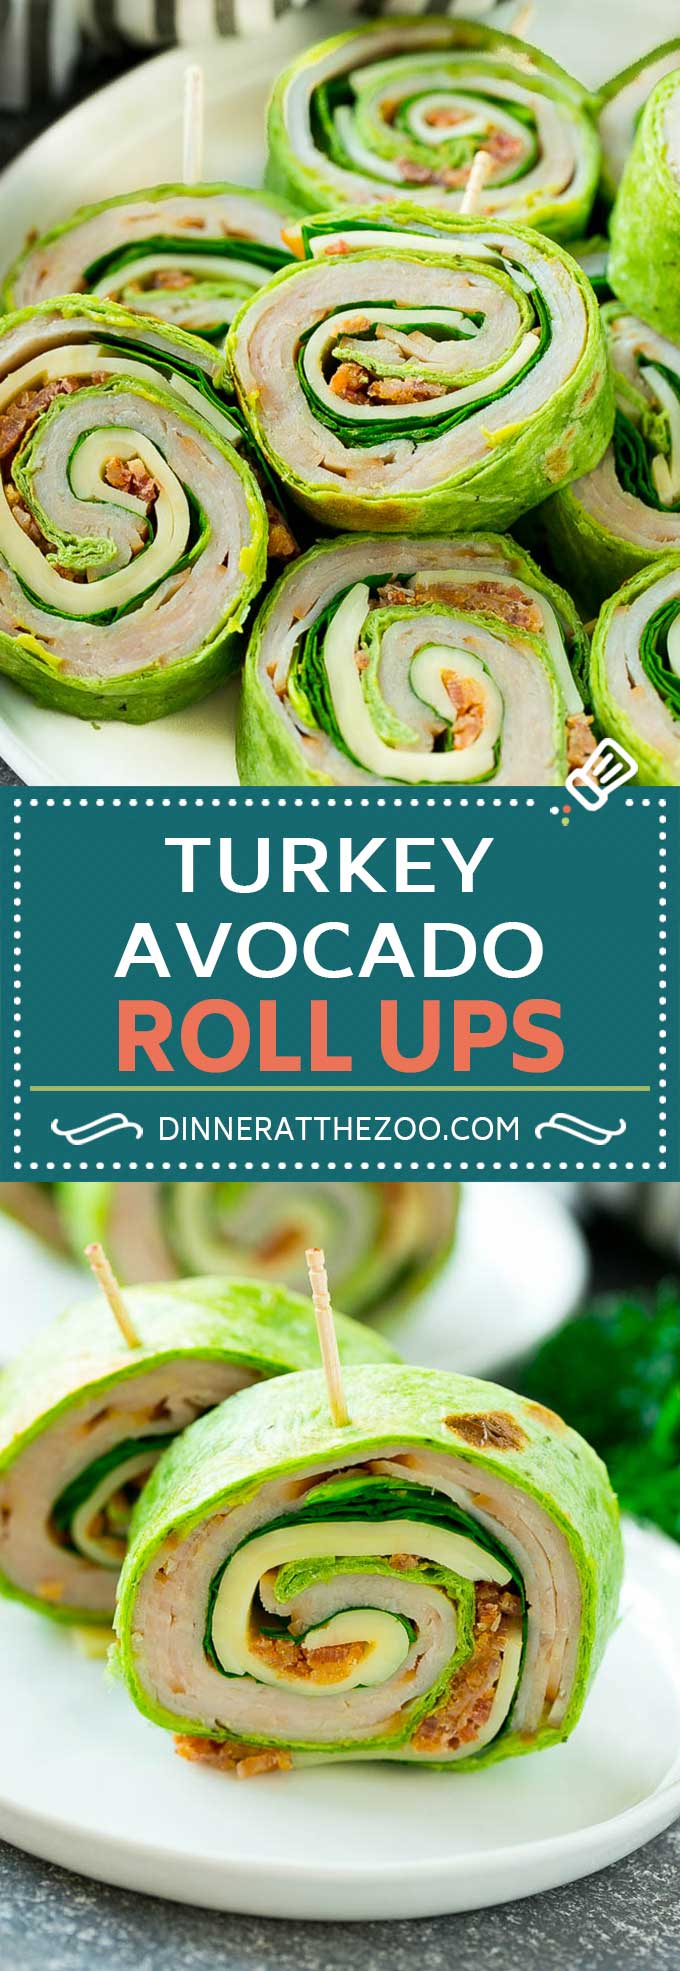 Turkey Roll Ups Recipe | Turkey Pinwheel Sandwiches | Turkey Roller Sandwiches #turkey #avocado #sandwich #lunch #appetizer #dinneratthezoo